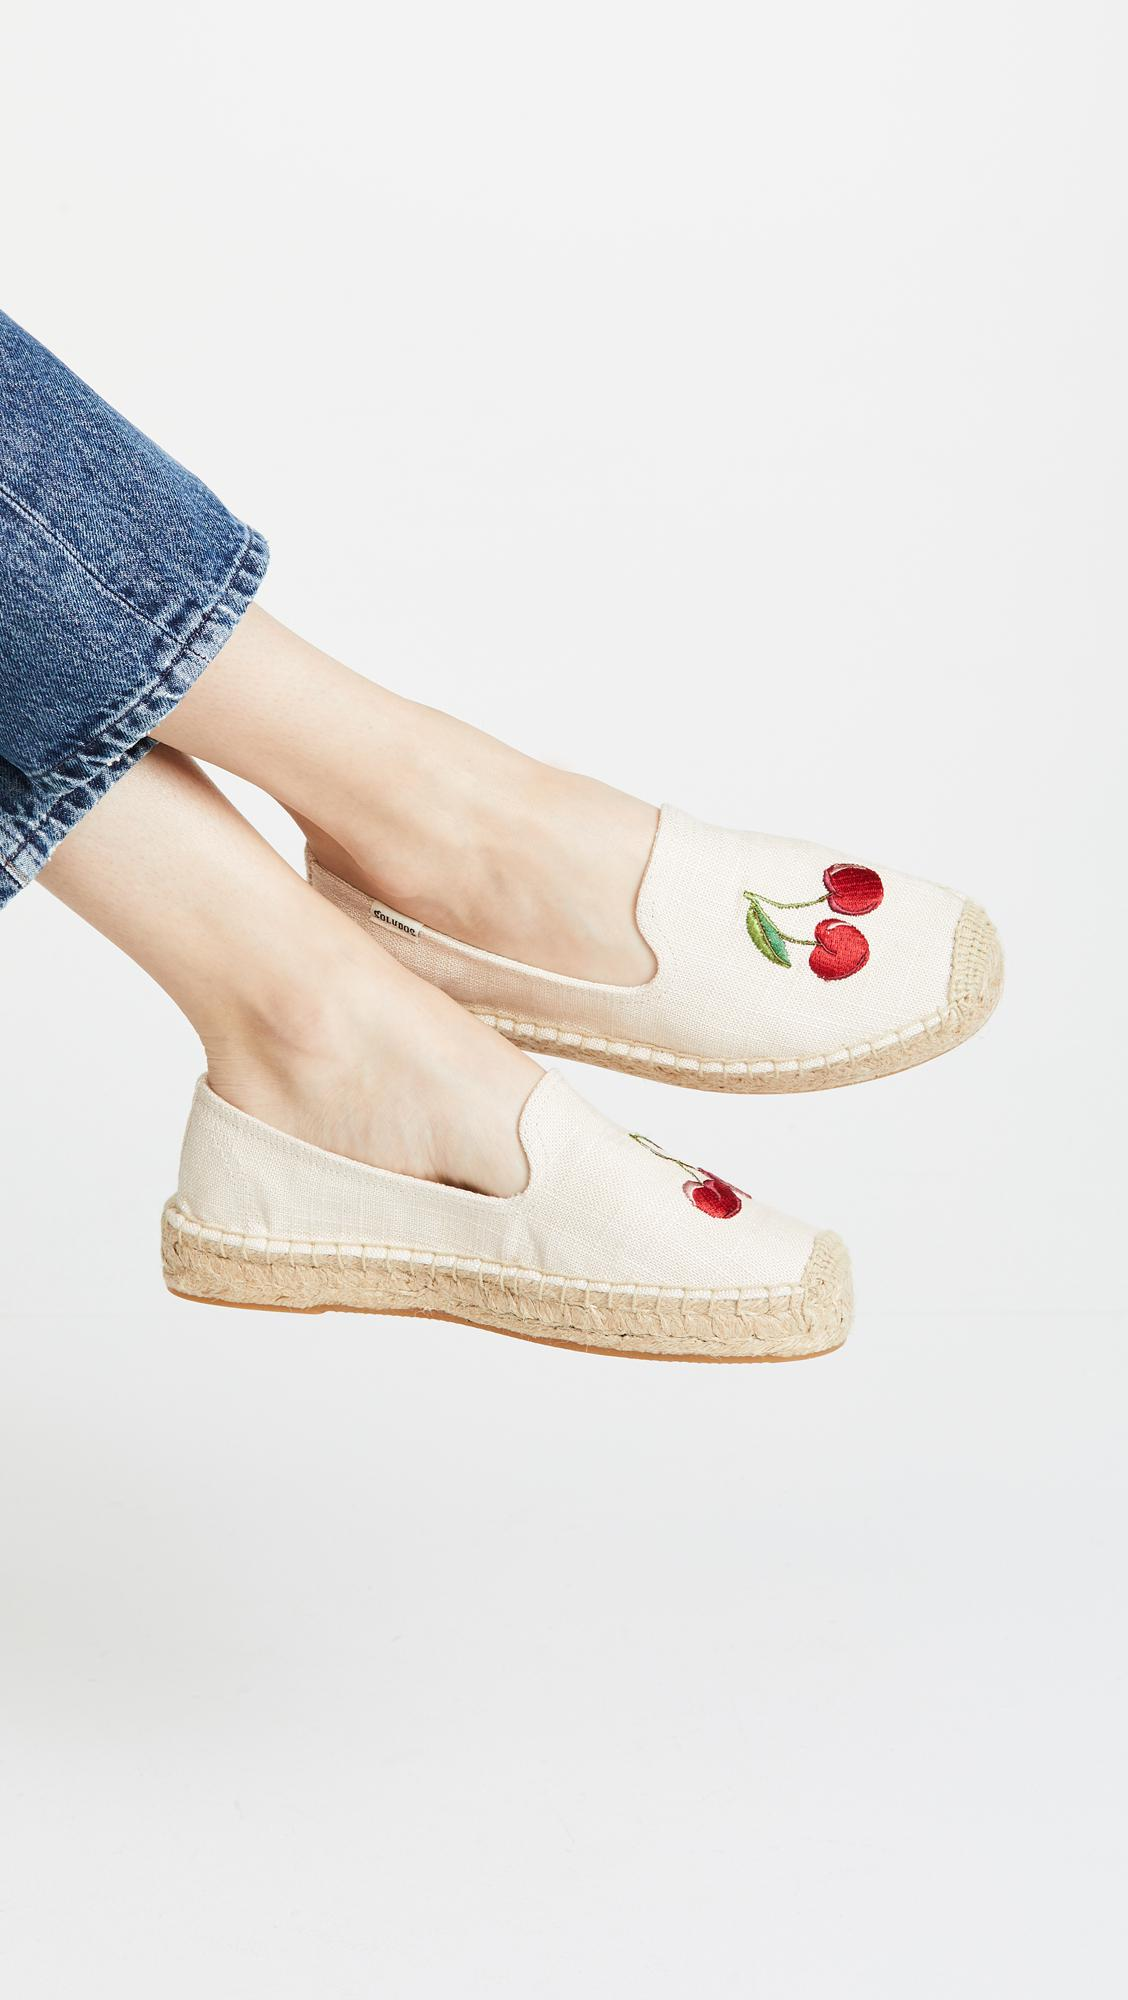 676861a29c6aa9 Lyst - Soludos Cherries Smoking Slippers